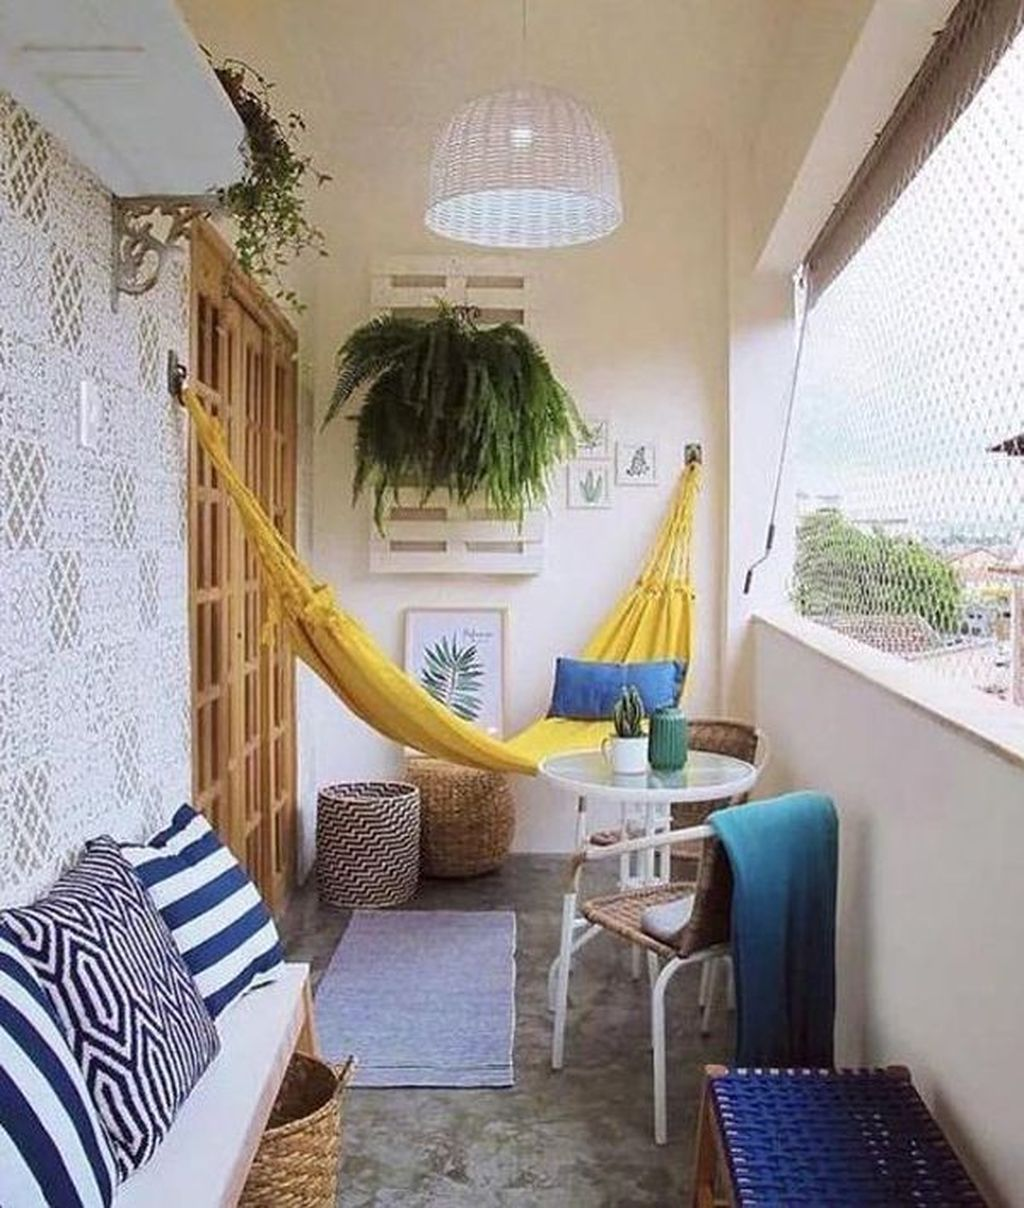 30 Brilliant Closed Balcony Design Ideas To Enjoy In All Weather Conditions Small Apartment Balcony Ideas Small Balcony Design Balcony Design